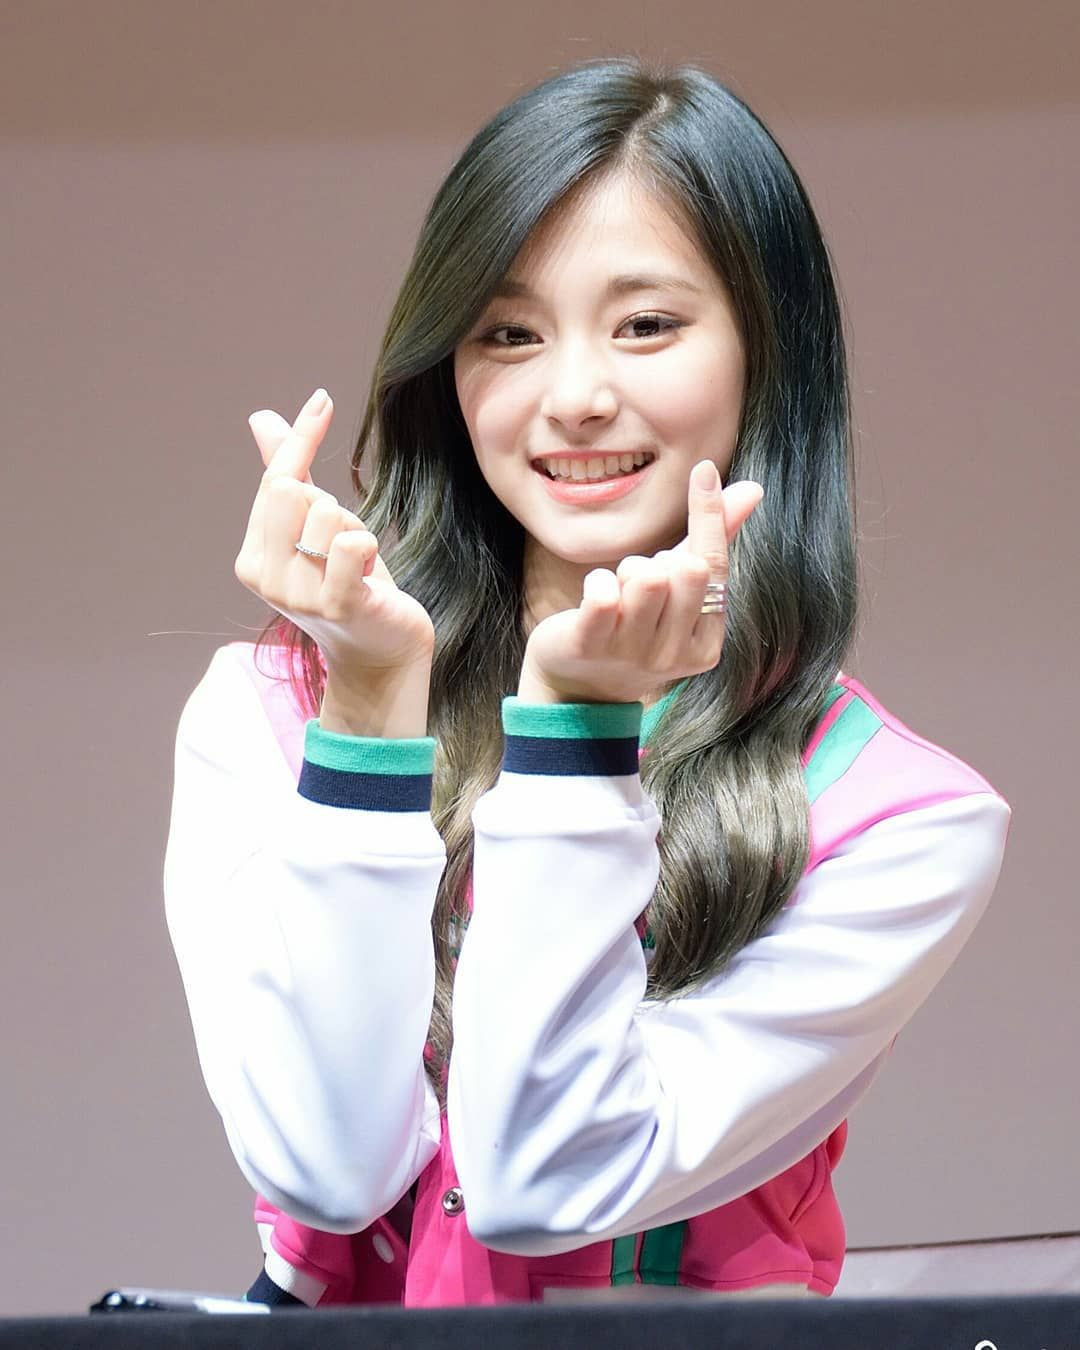 Did You Receive Tzuyu S Love A Compilation Post Of Tzuyu S Finger Heart C Good Evening Once Tzuyu Momo Sana Gadis Lucu Gadis Korea Selebritas